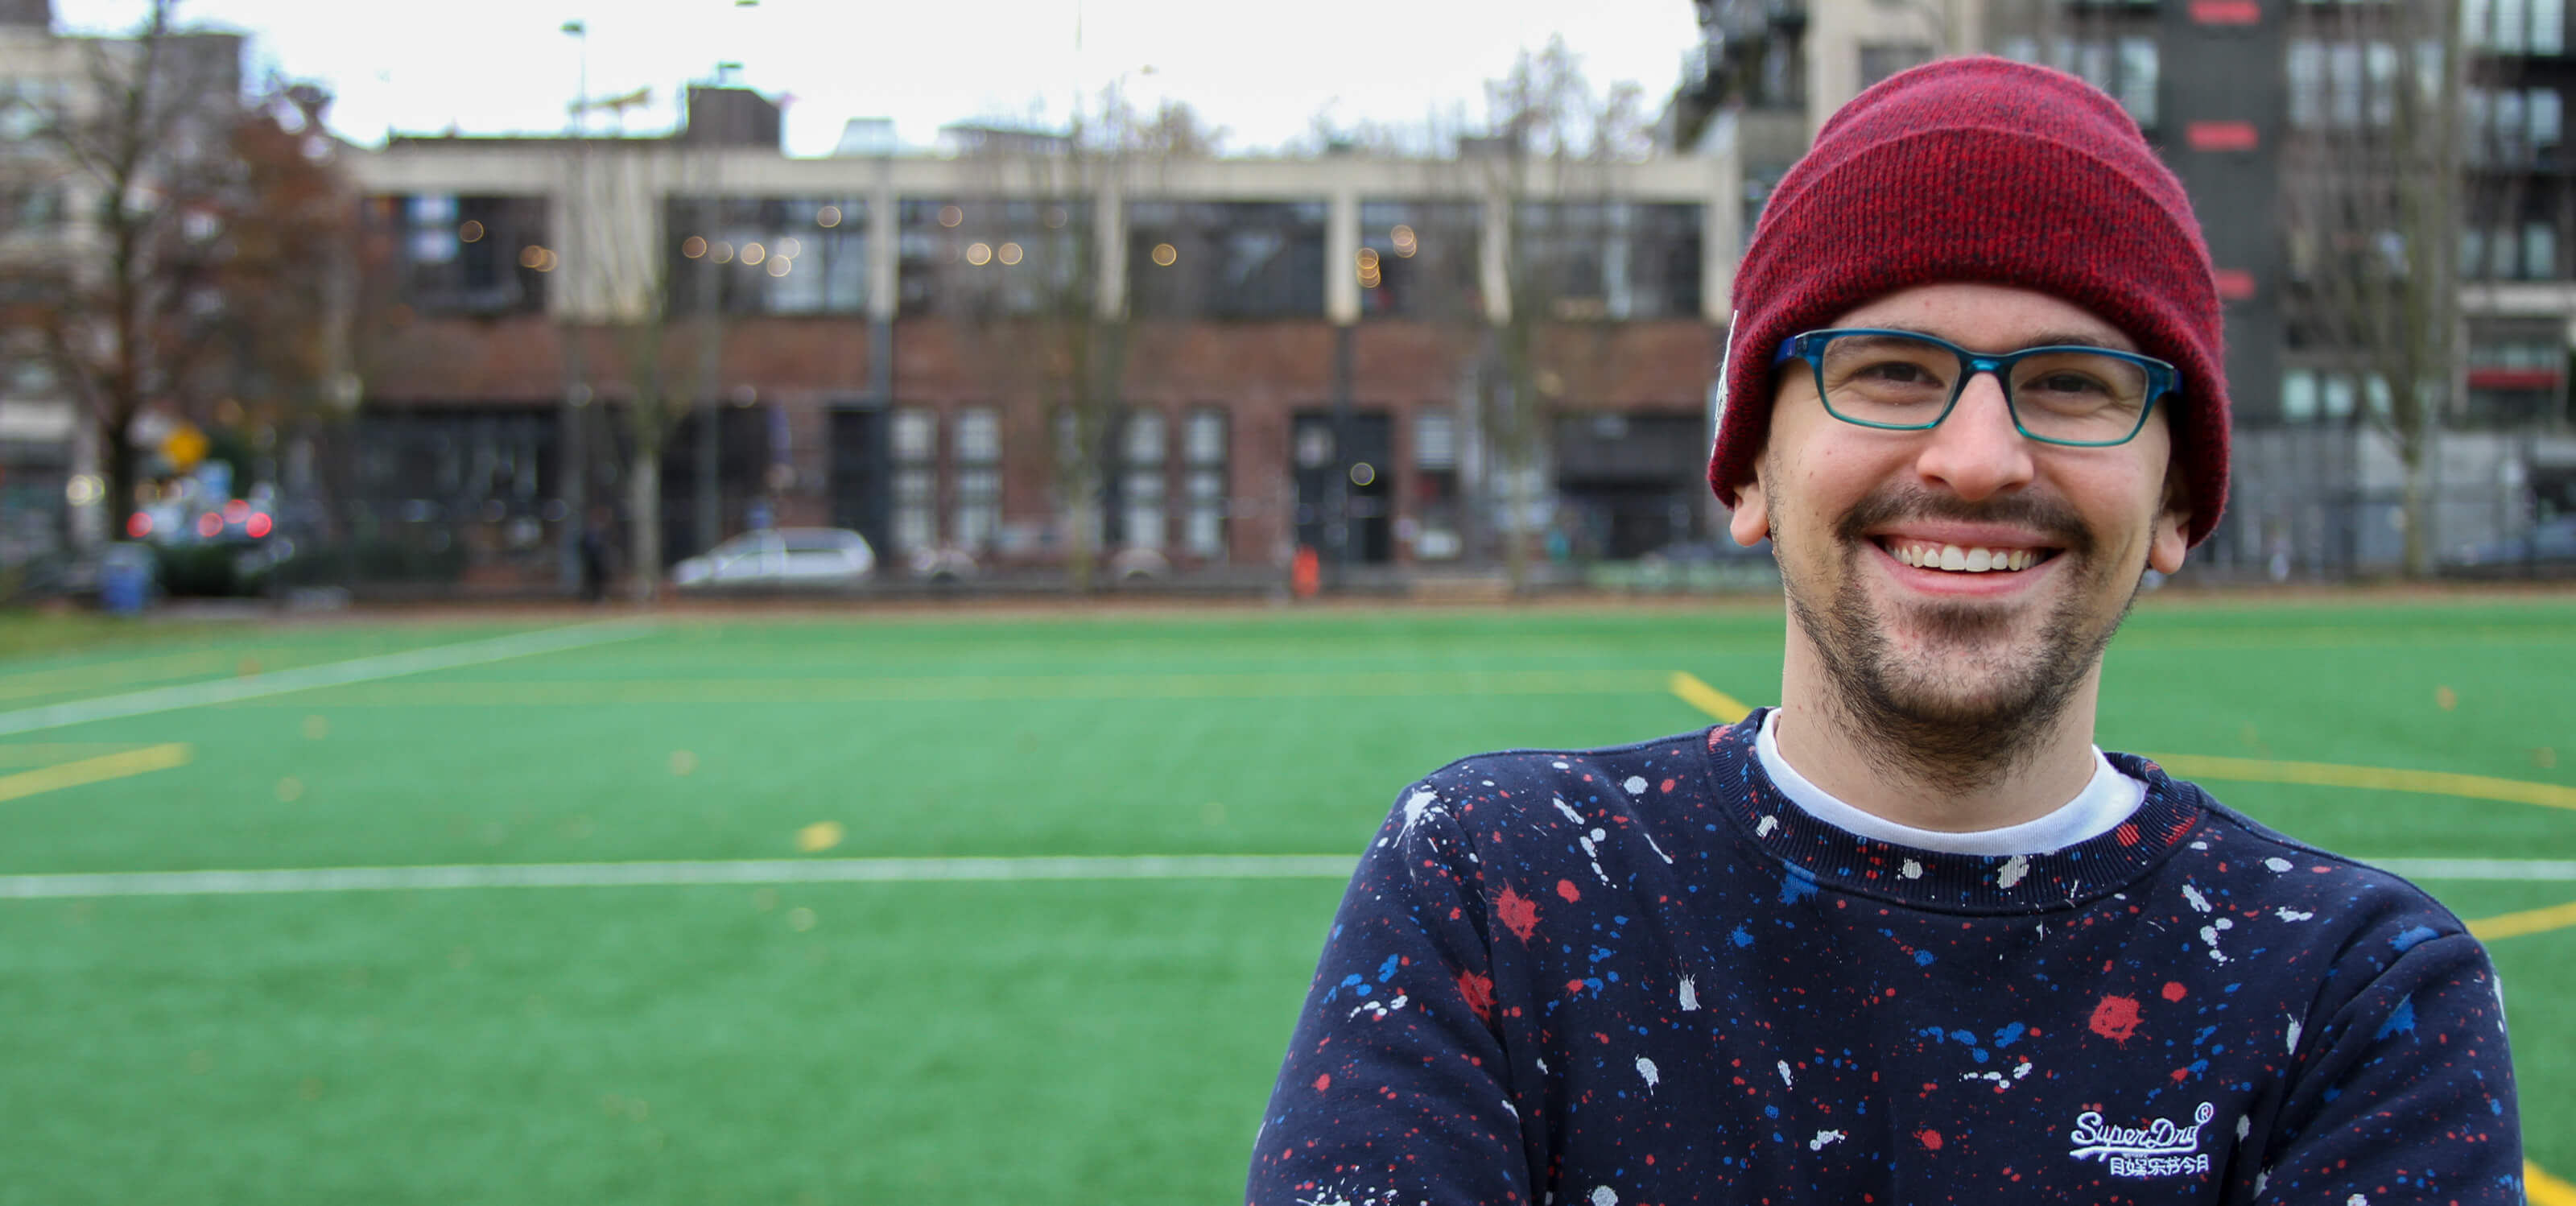 DigiPen game design graduate Logan Fieth smiles for the camera in Seattle's Cal Anderson Park.